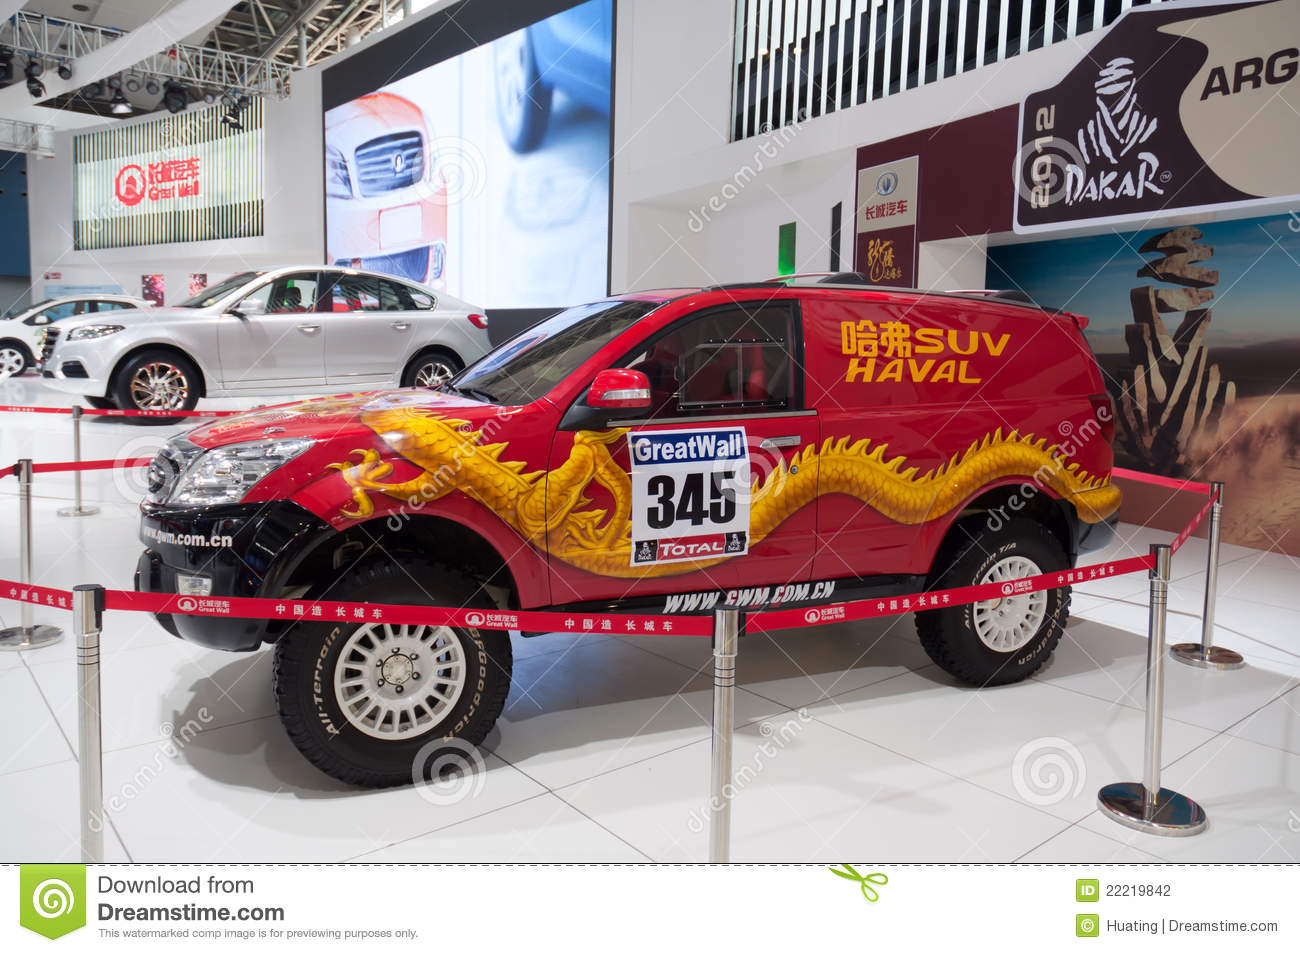 Great wall haval suv editorial photography image 22219842 for Great wall motors stock